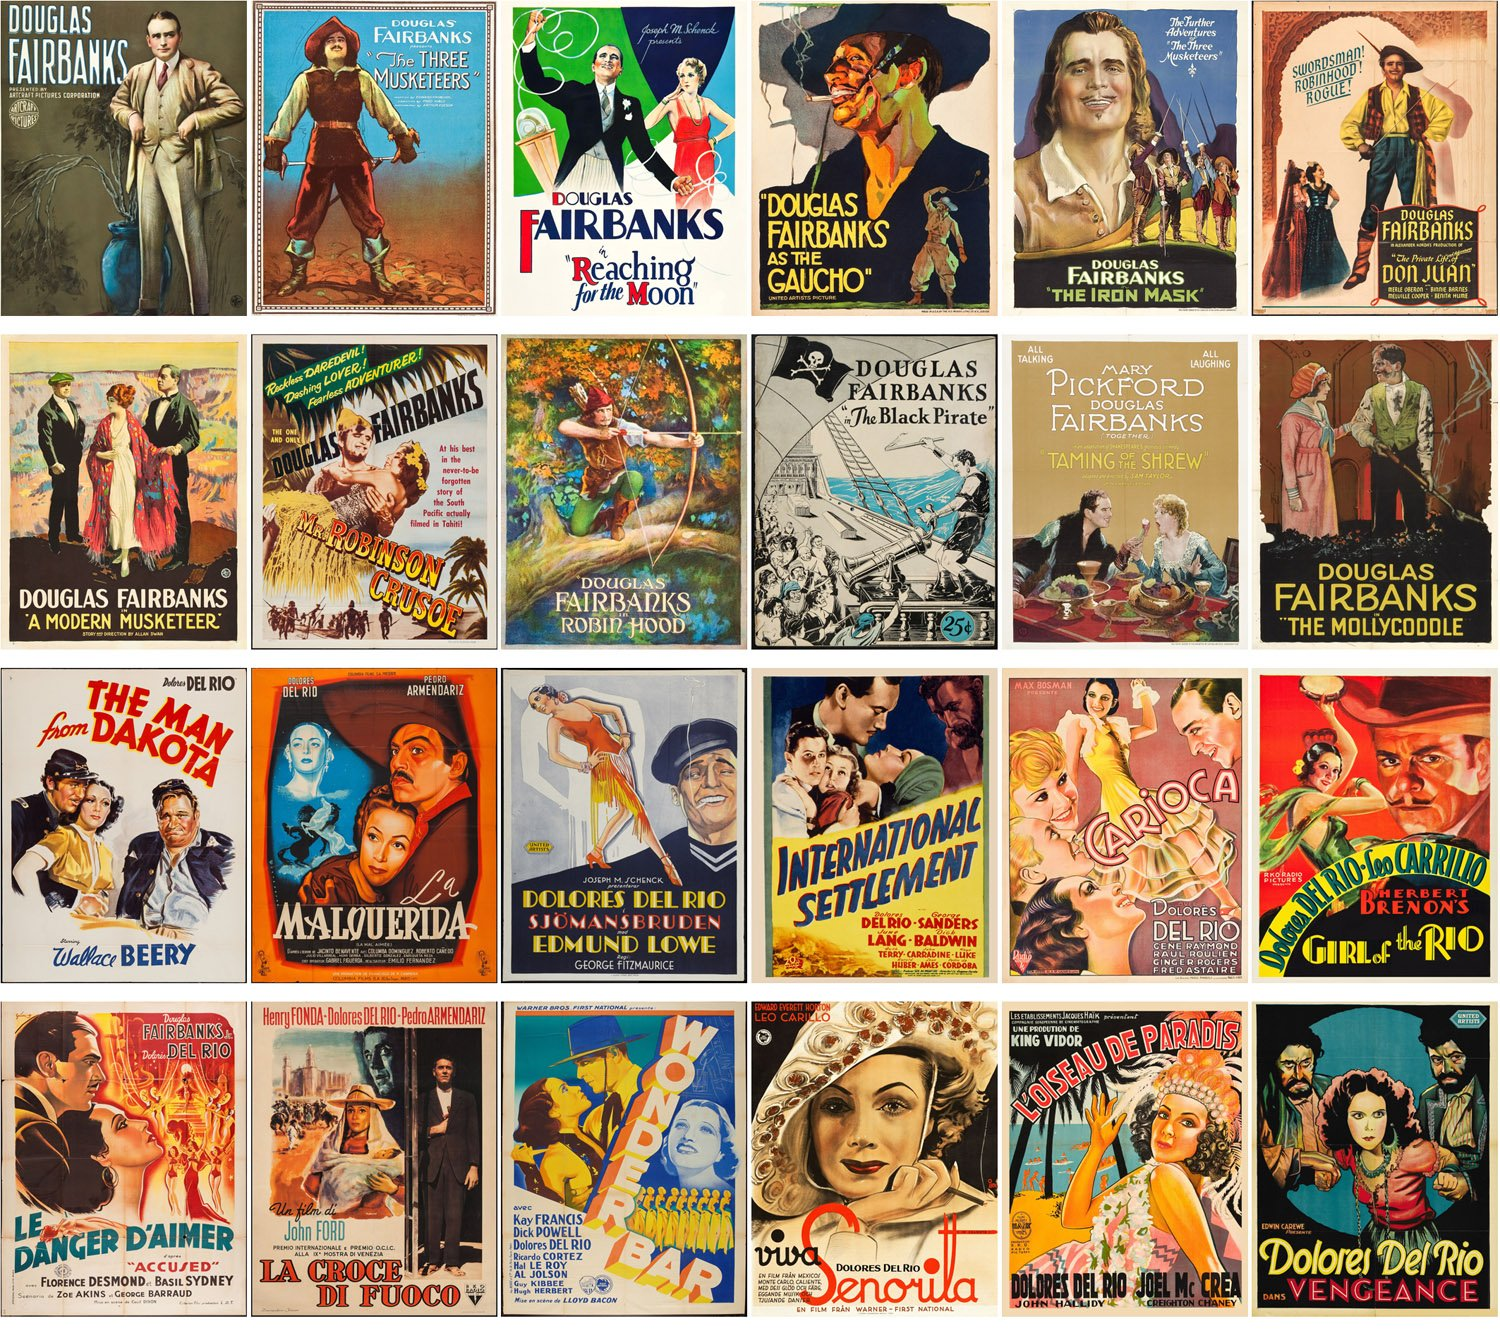 Amazon.com : Postcard Set 24pcs Dolores Del Rio and Douglas Fairbank Vintage Silent Film Movie Posters : Office Products